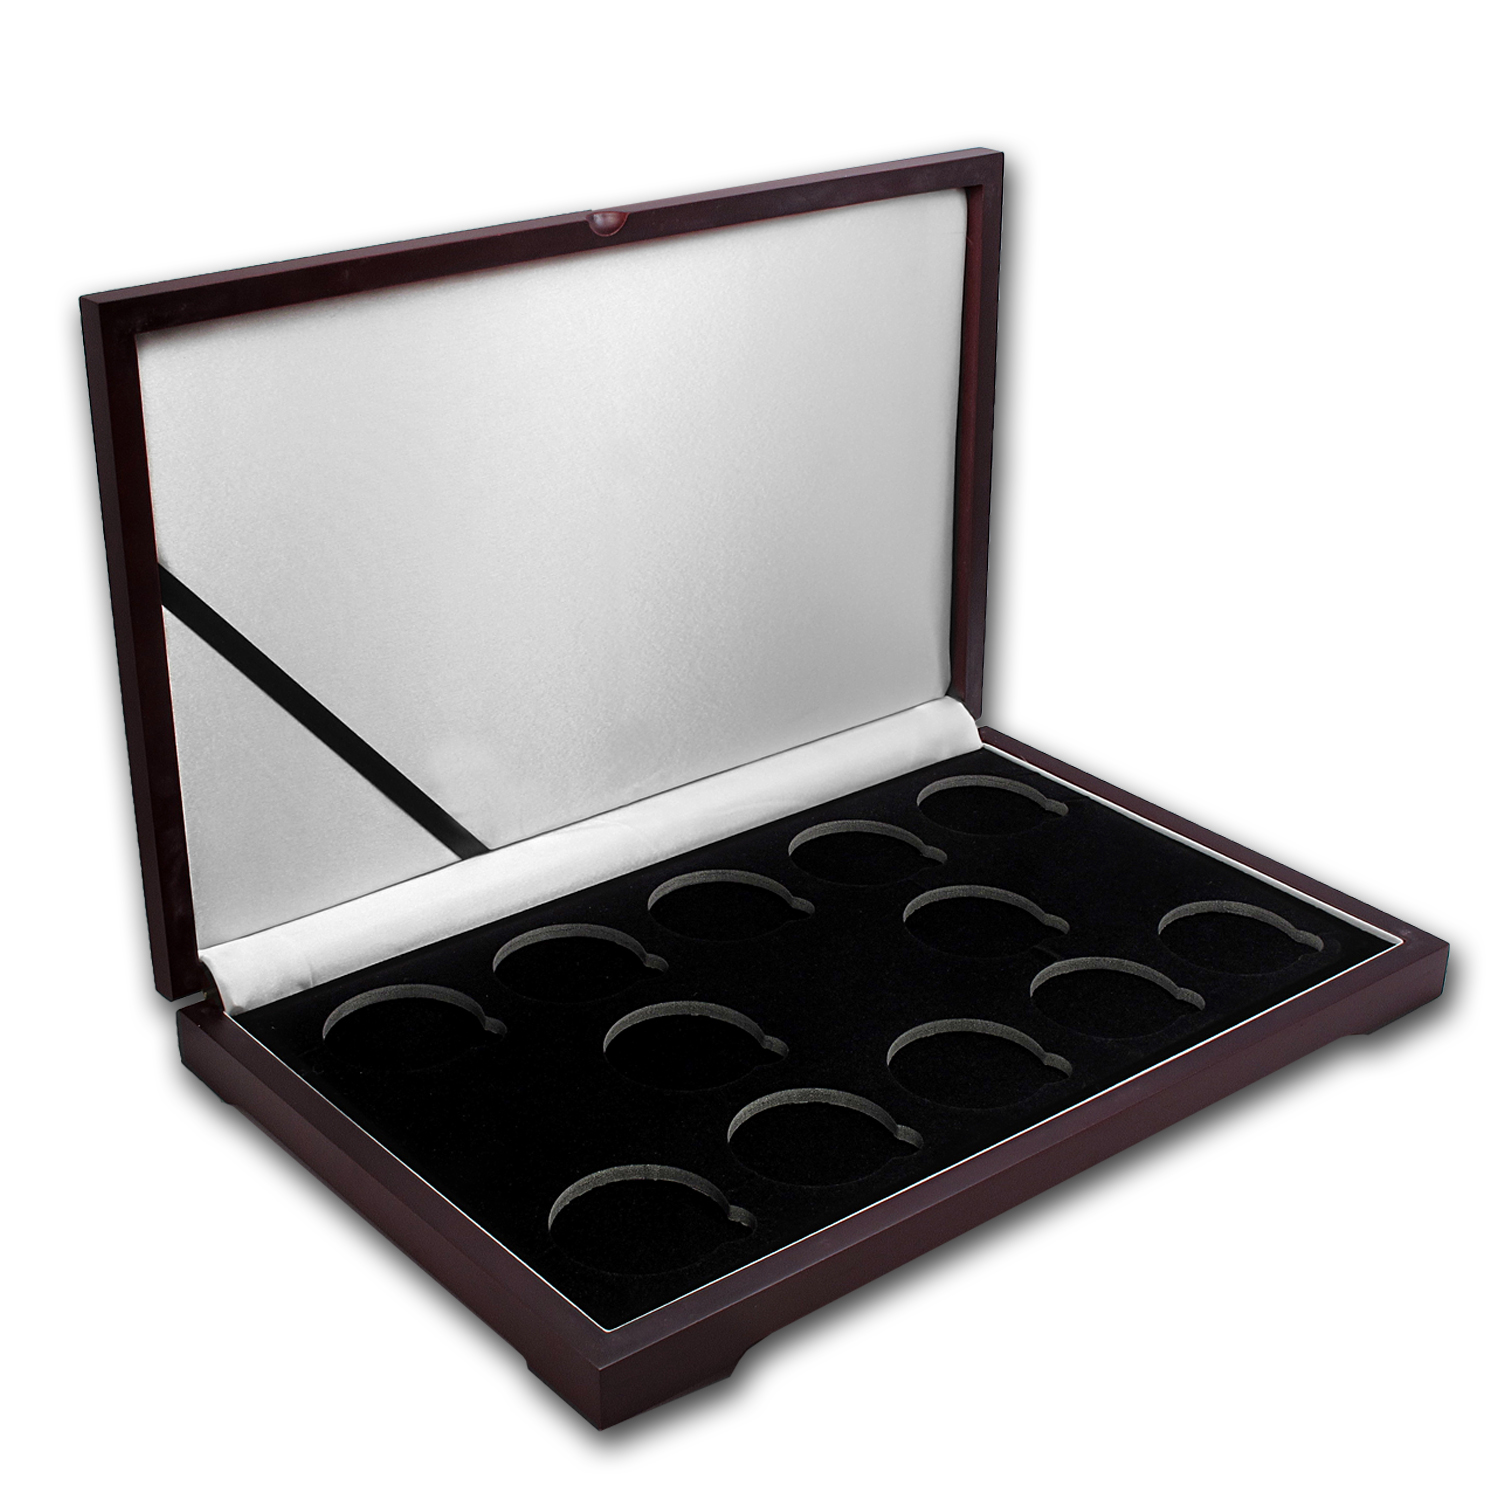 Lunar Series II (2oz Silver) 12 coin Wood Presentation Box